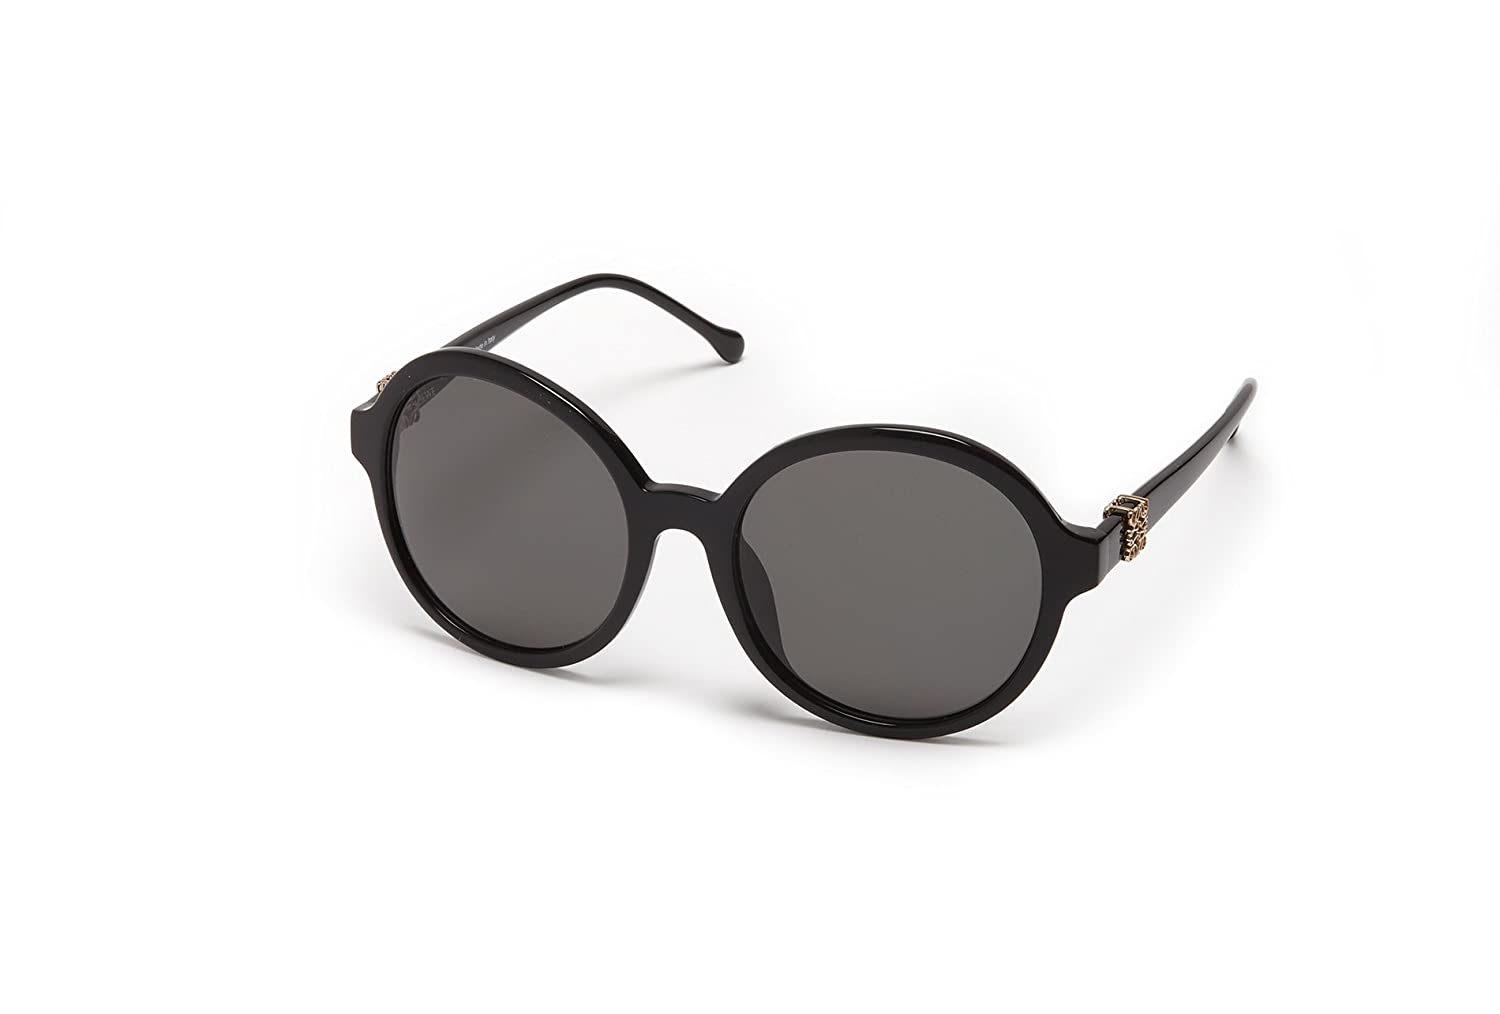 Amazon.com: Loewe Sunglasses SLW949G570700 (57mm) Women ...